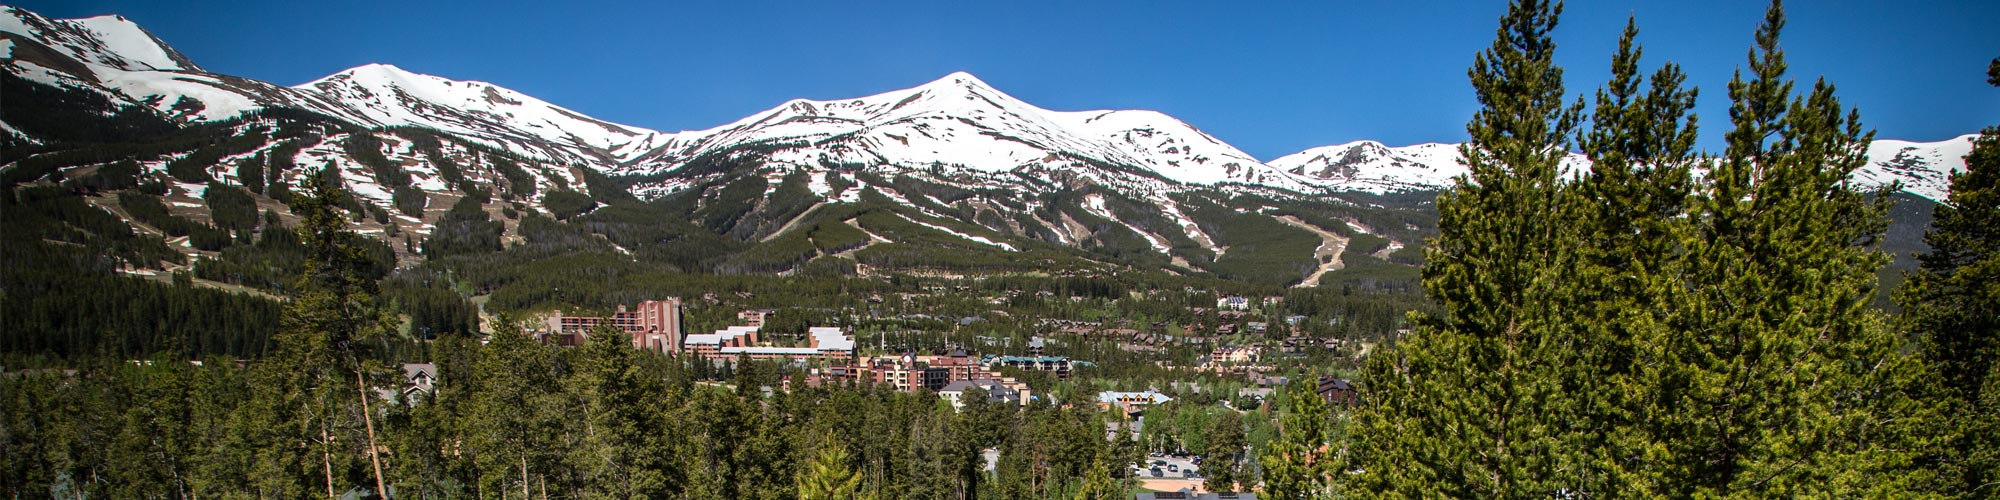 Breckenridge in the summer